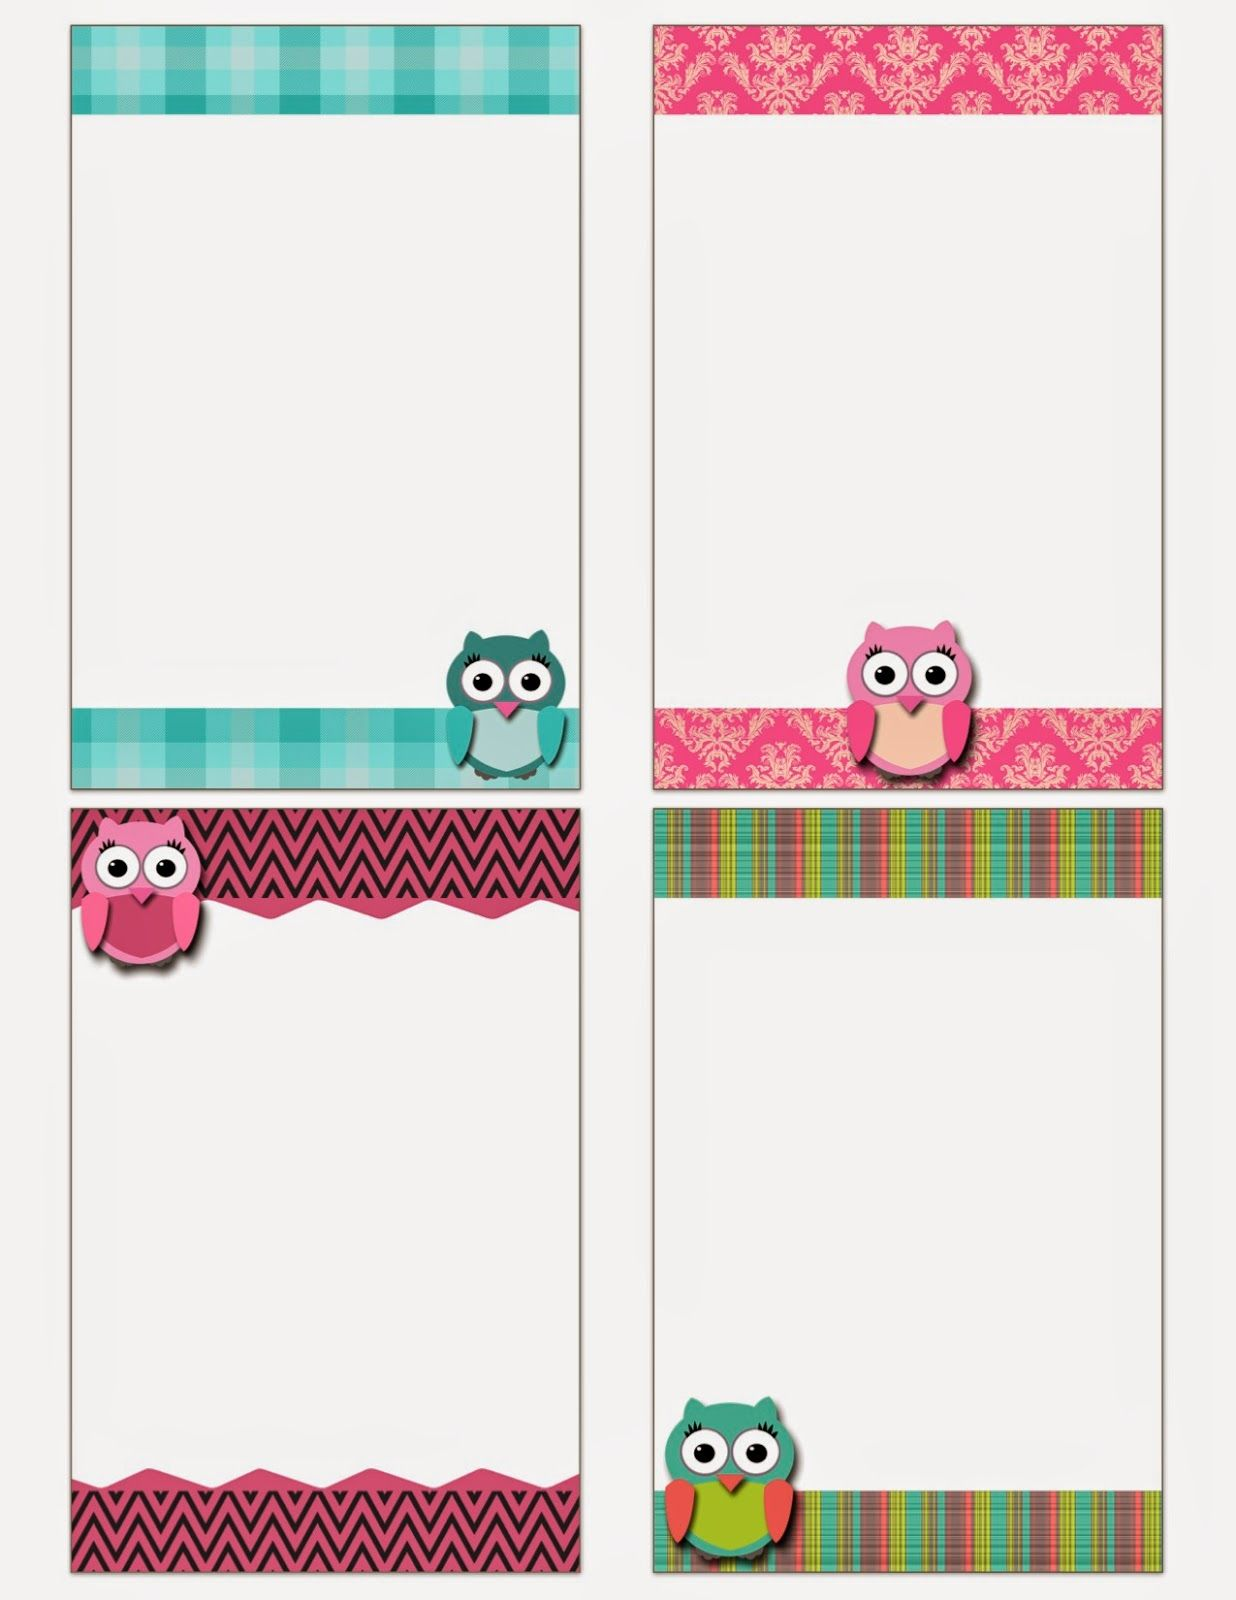 Printable Note Cards Free Printable Owl Notecards Crafts Pinterest Free